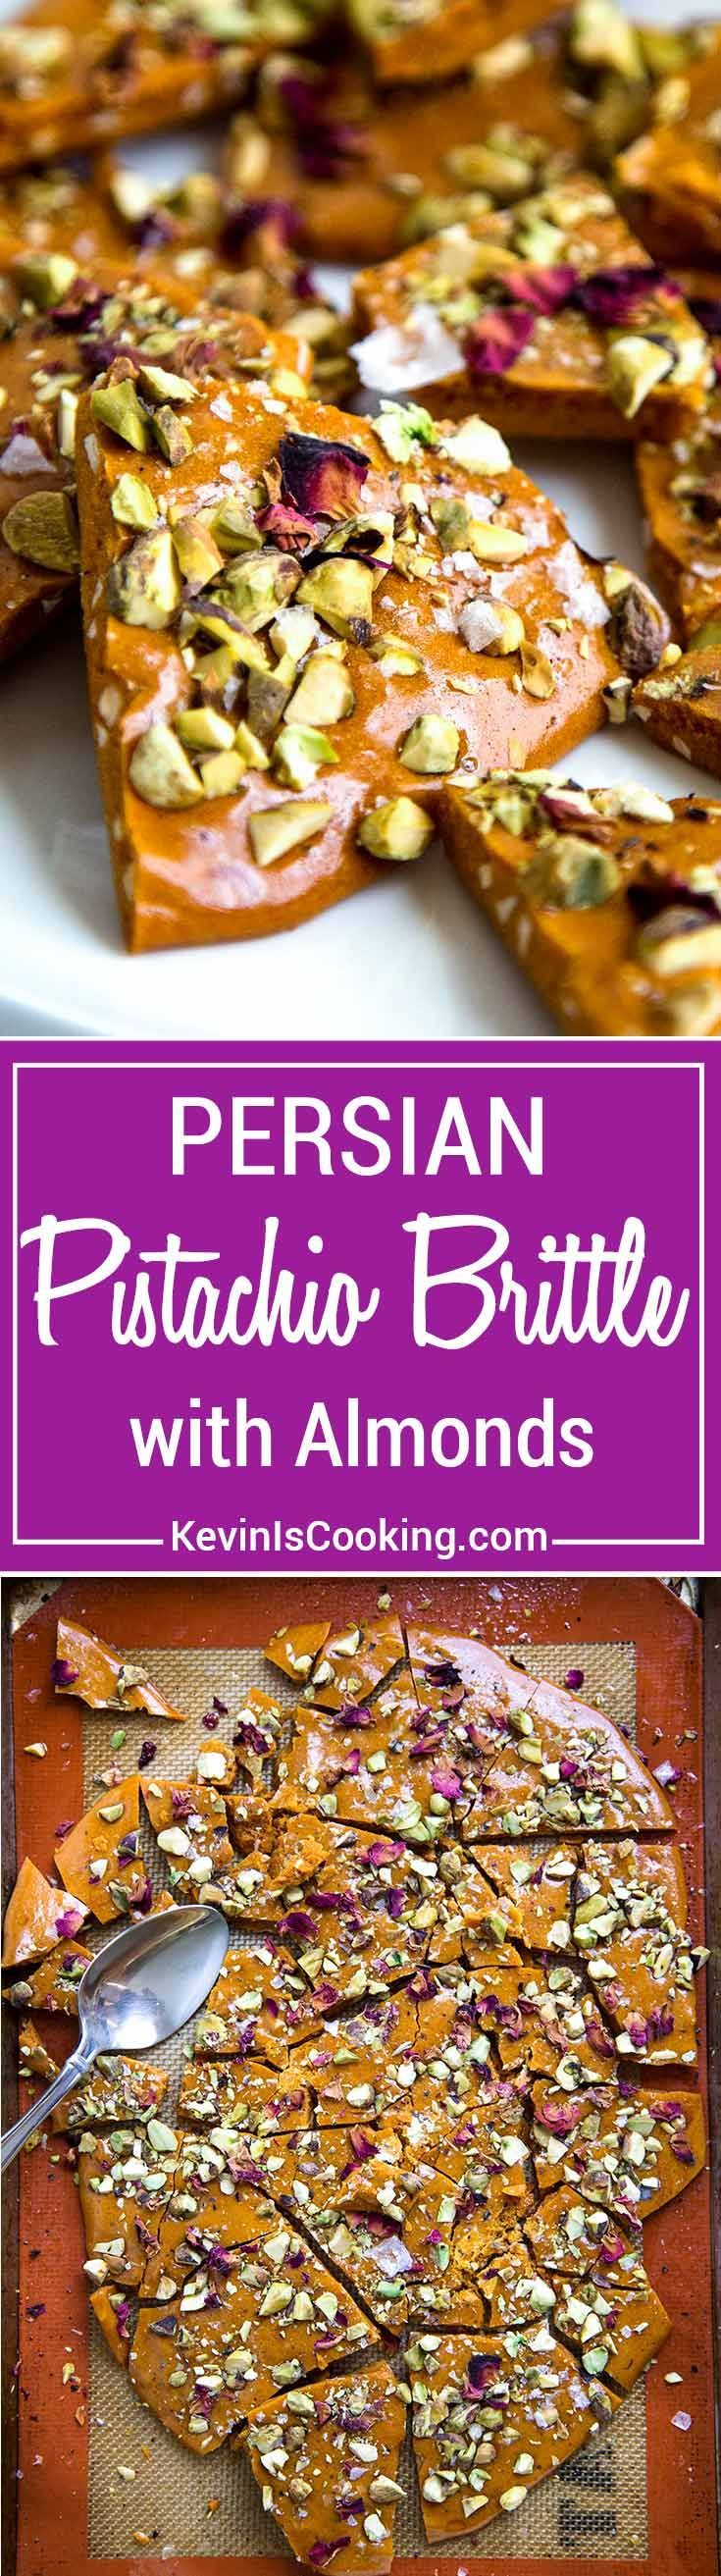 Persian Almond and Pistachio Brittle - Sweet and salty brittle with delicate Persian flavors like rose water, saffron, almonds and pistachios. So Good! via @keviniscooking